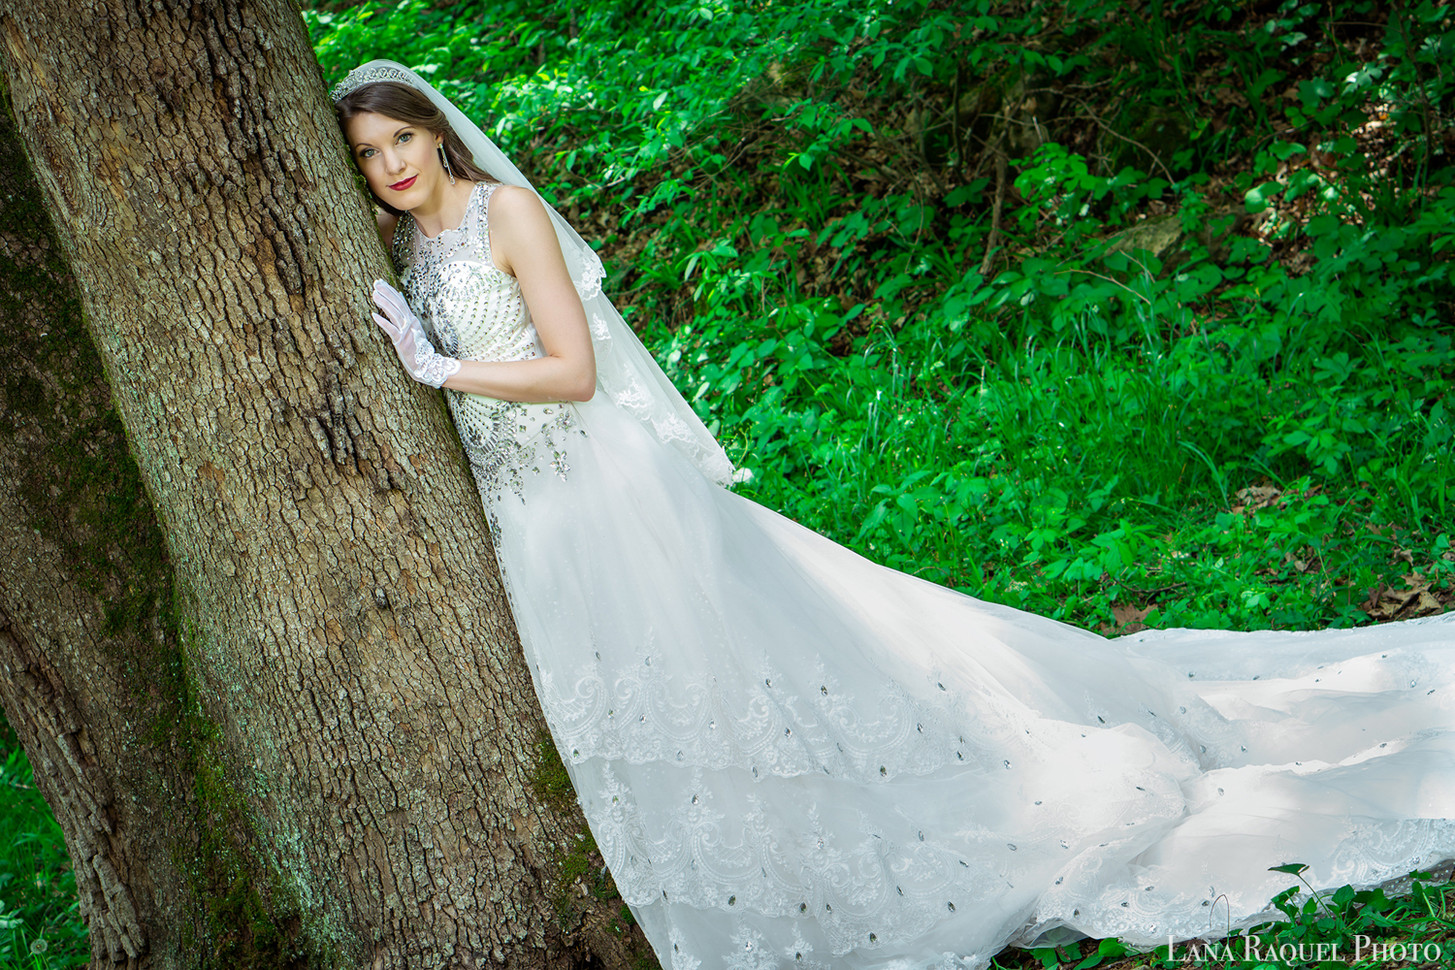 Bride-Hugs-Tree-in-Forest